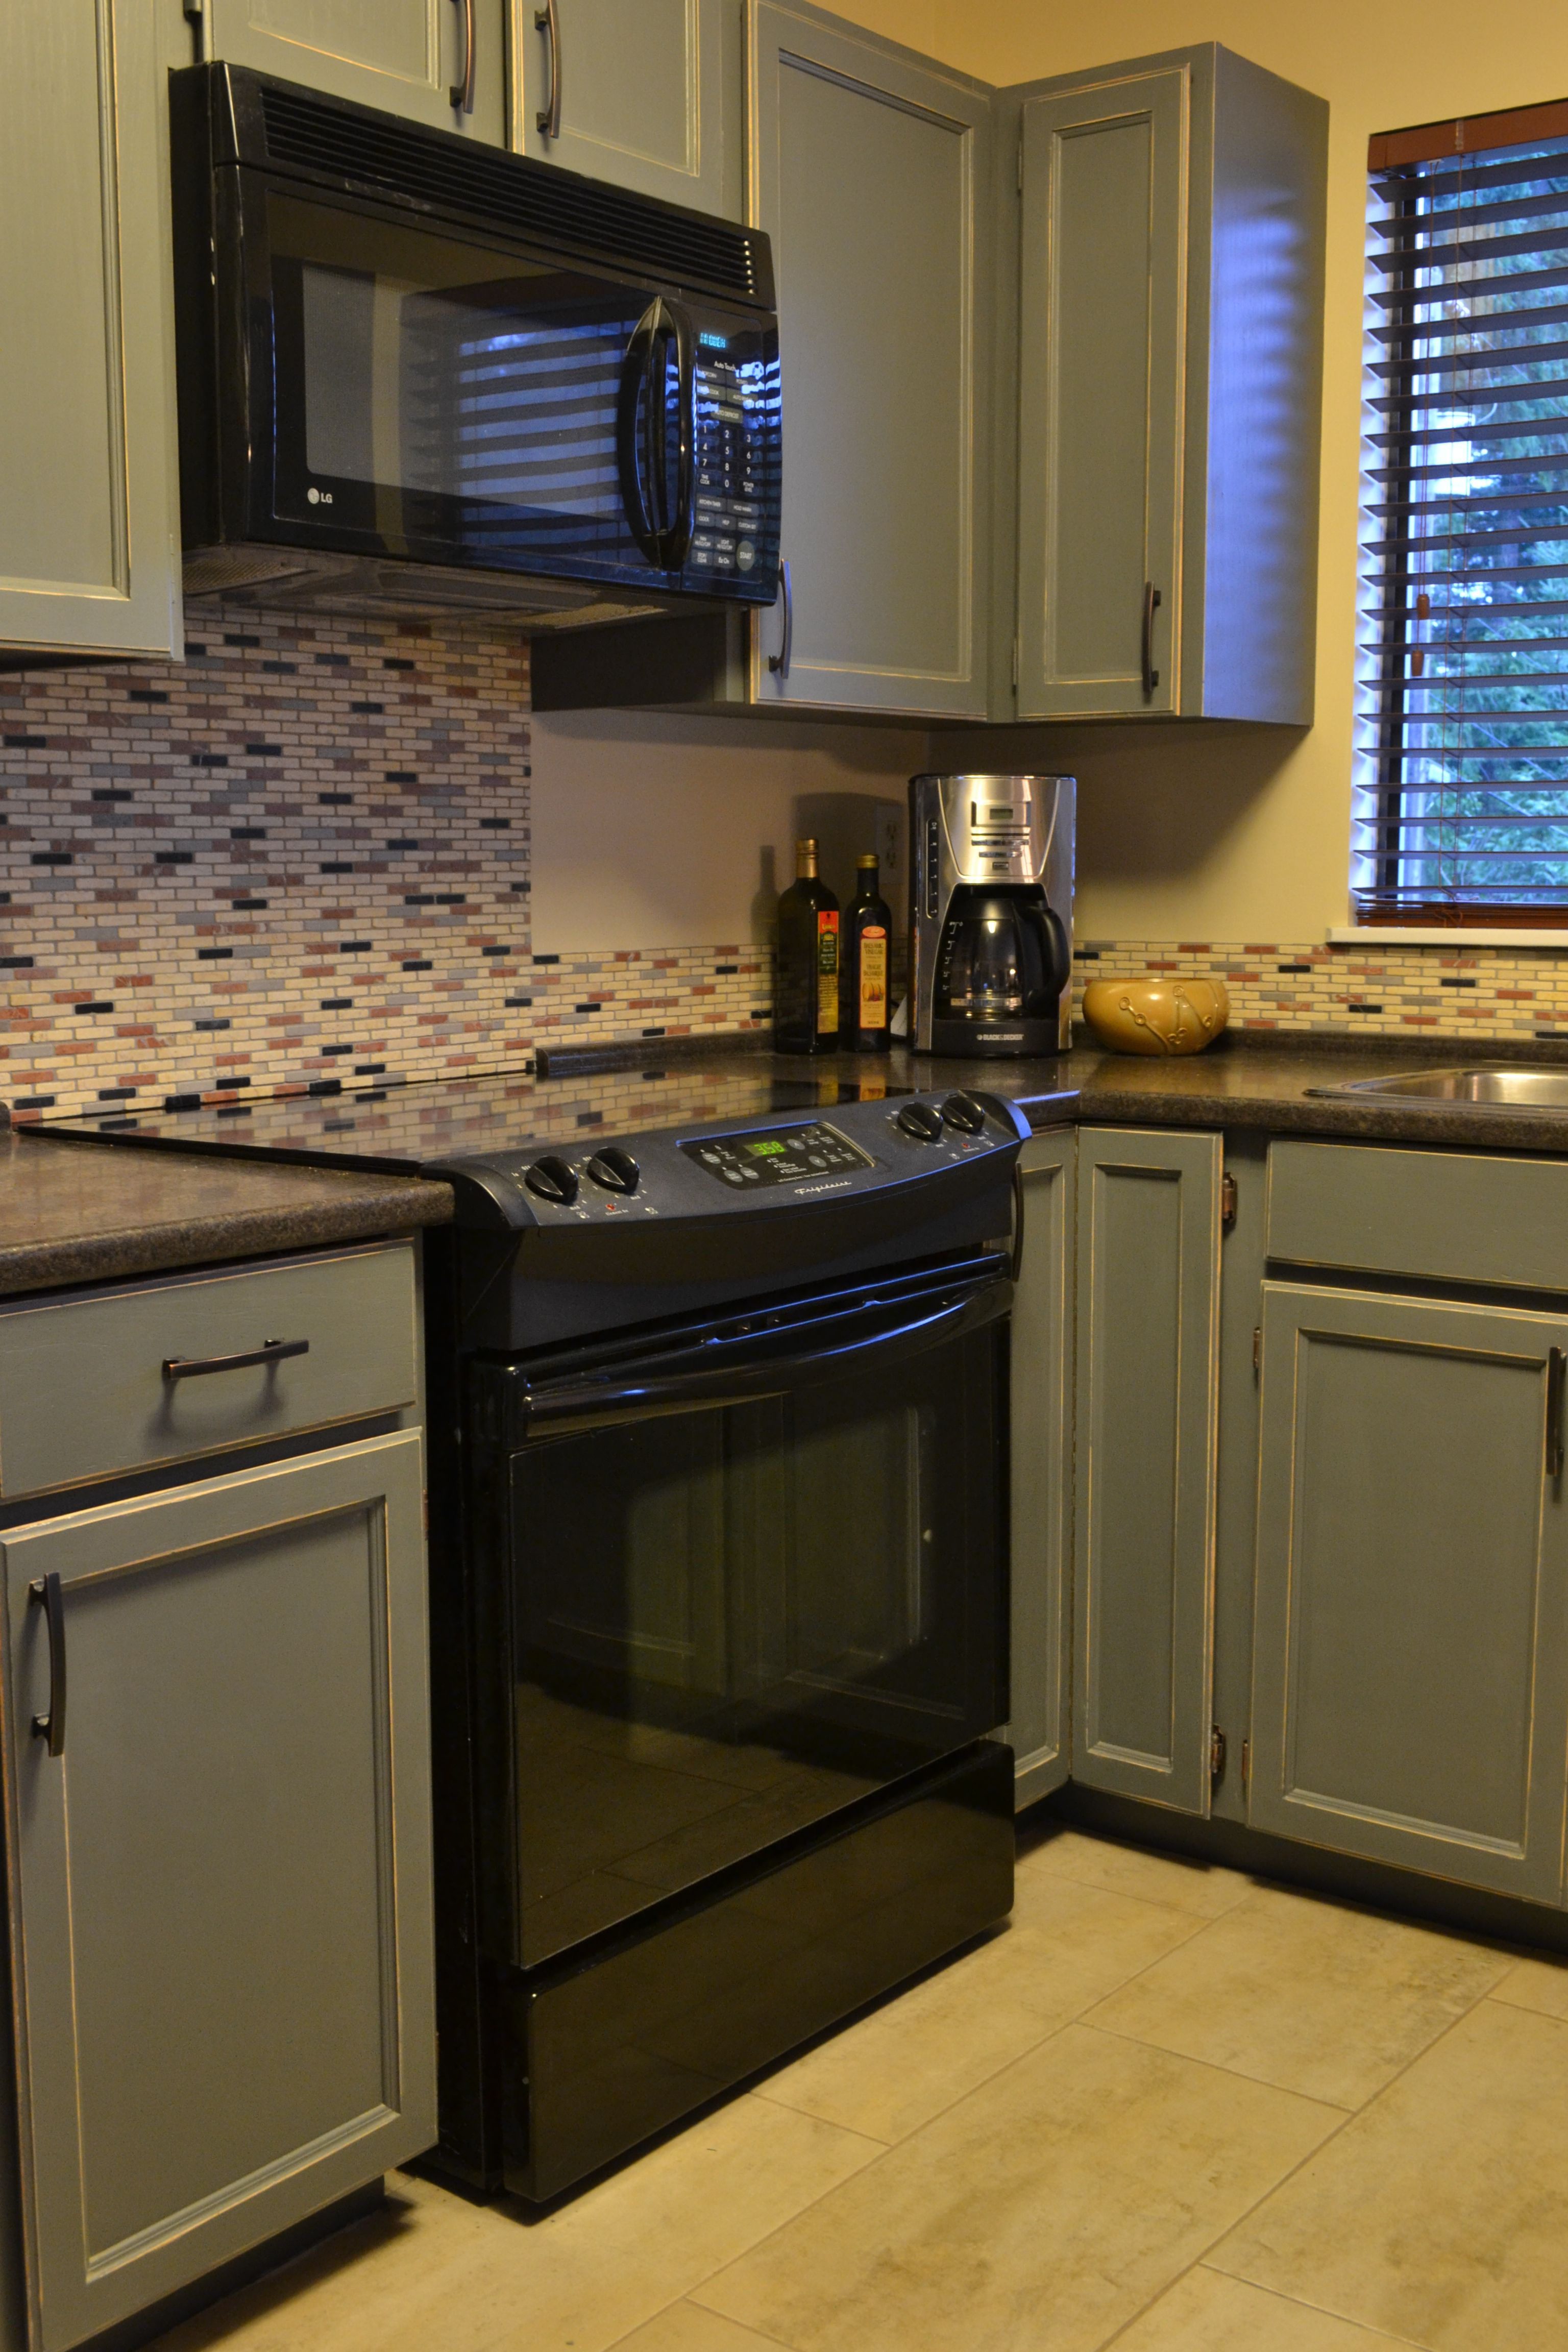 Best How To Distress Painted Wood Furniture Or Cabinets 640 x 480